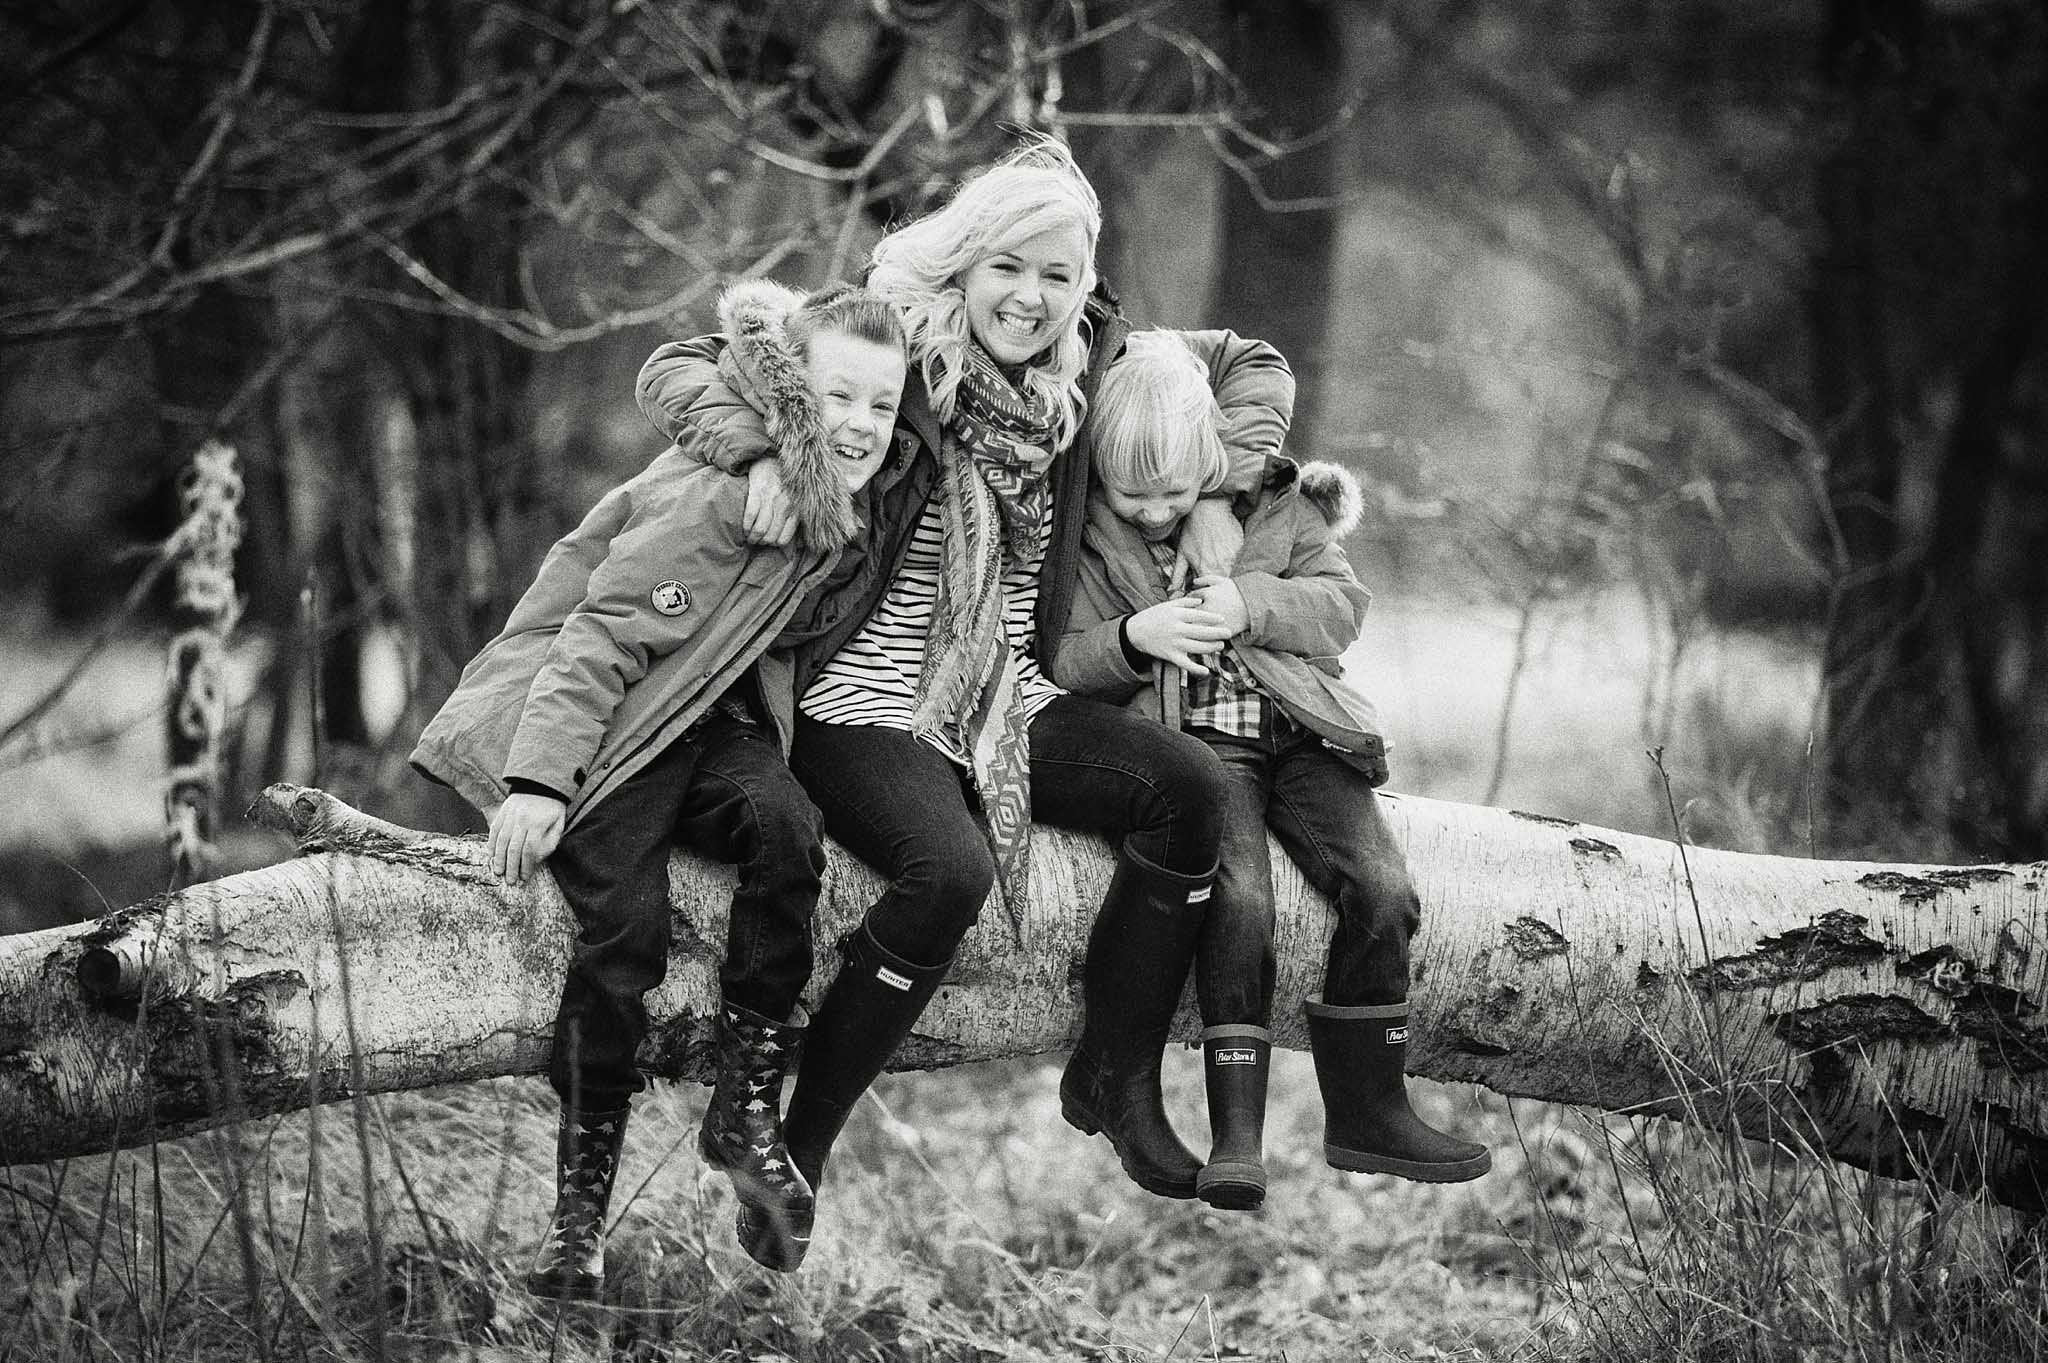 family photographer portrait clumber park doncaster yorkshire.jpg